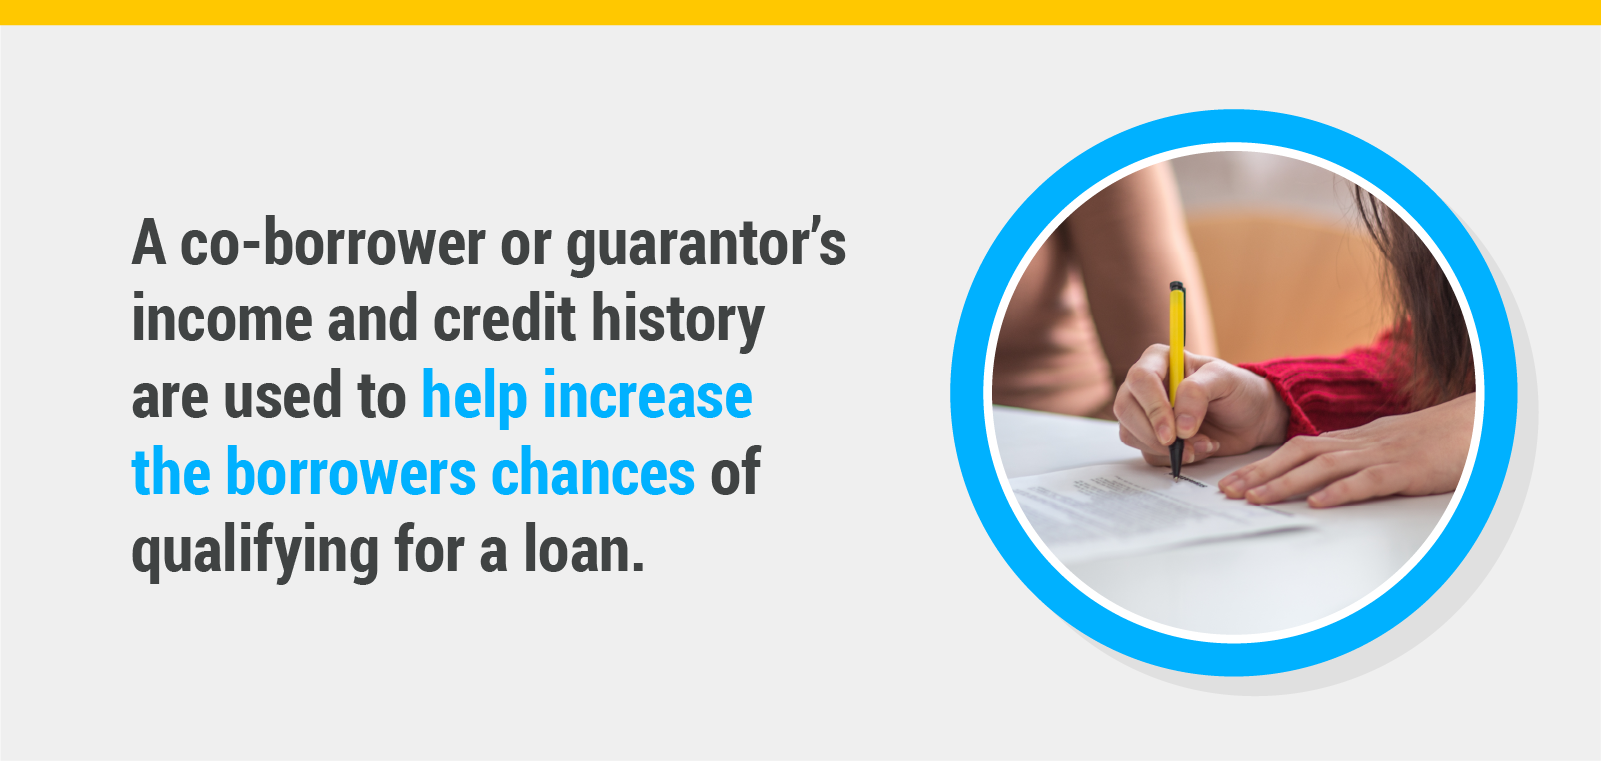 Your co-borrowers income and credit score can help you qualify for a loan